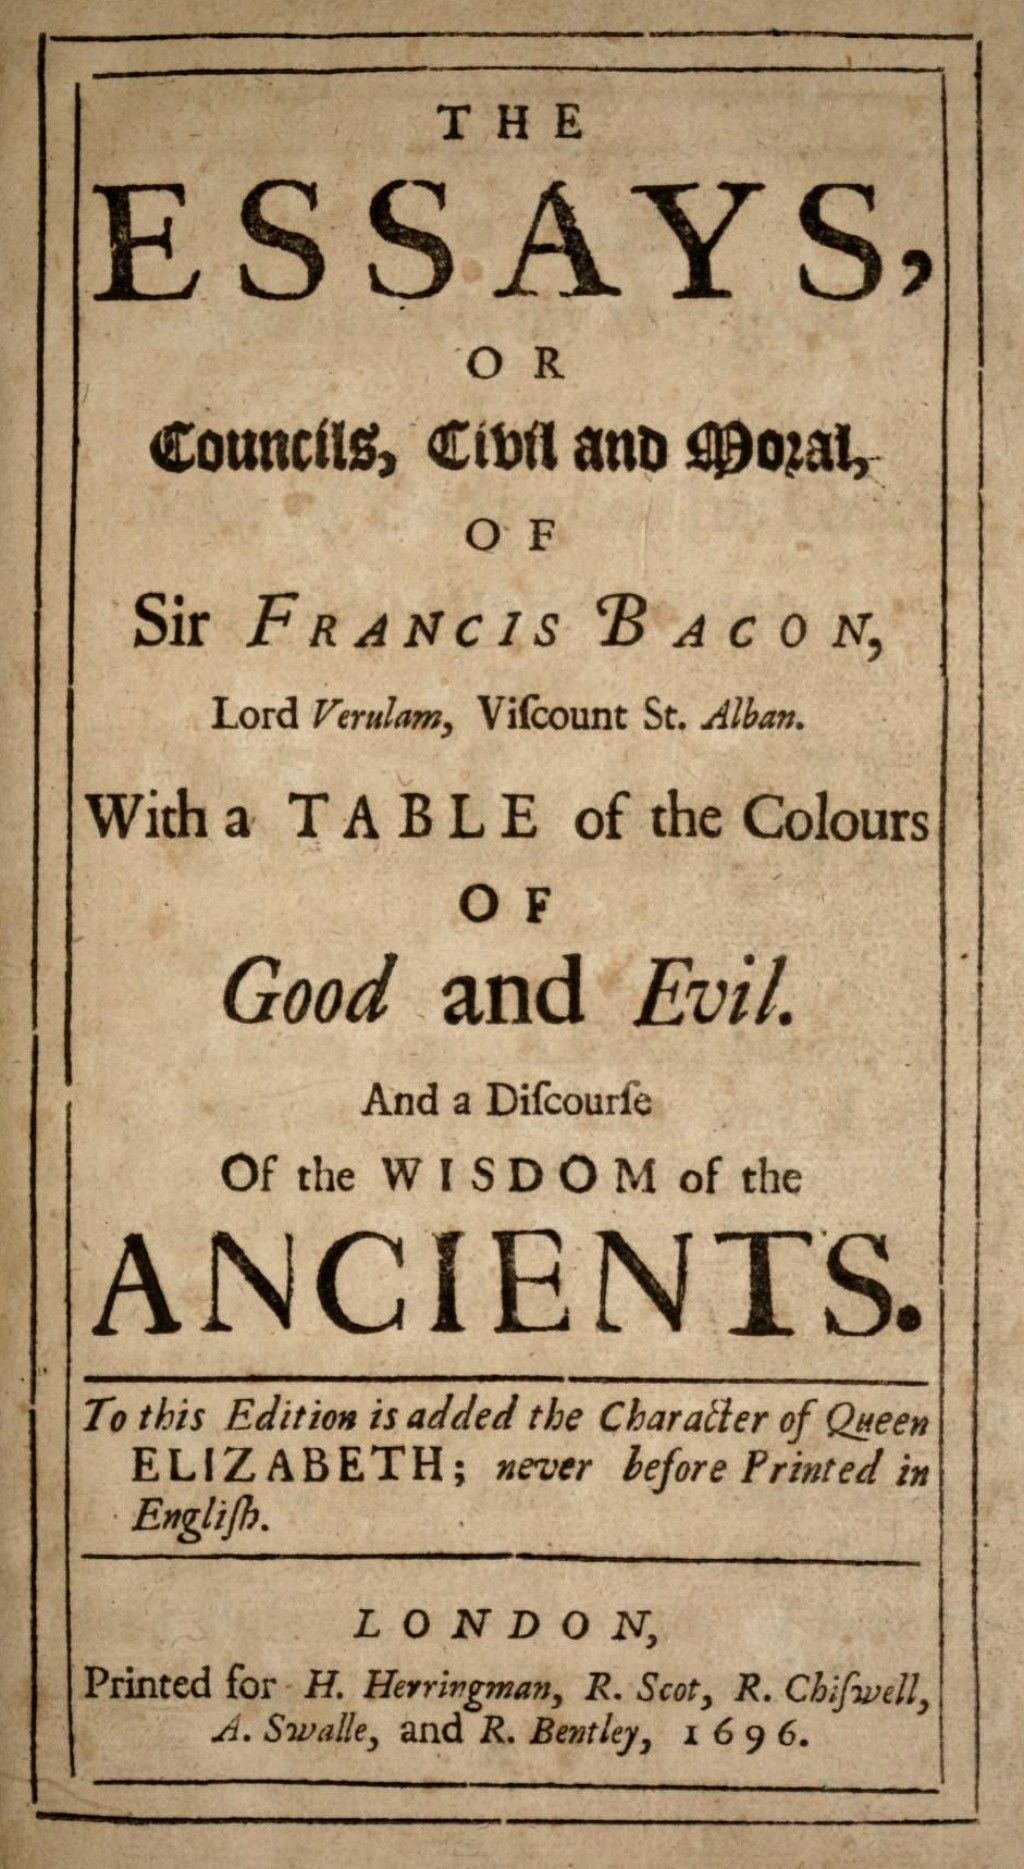 001 Bacons Essays Bacon 1696 Essay Amazing Francis Pdf Free Download Bacon's Of Truth Summary Large